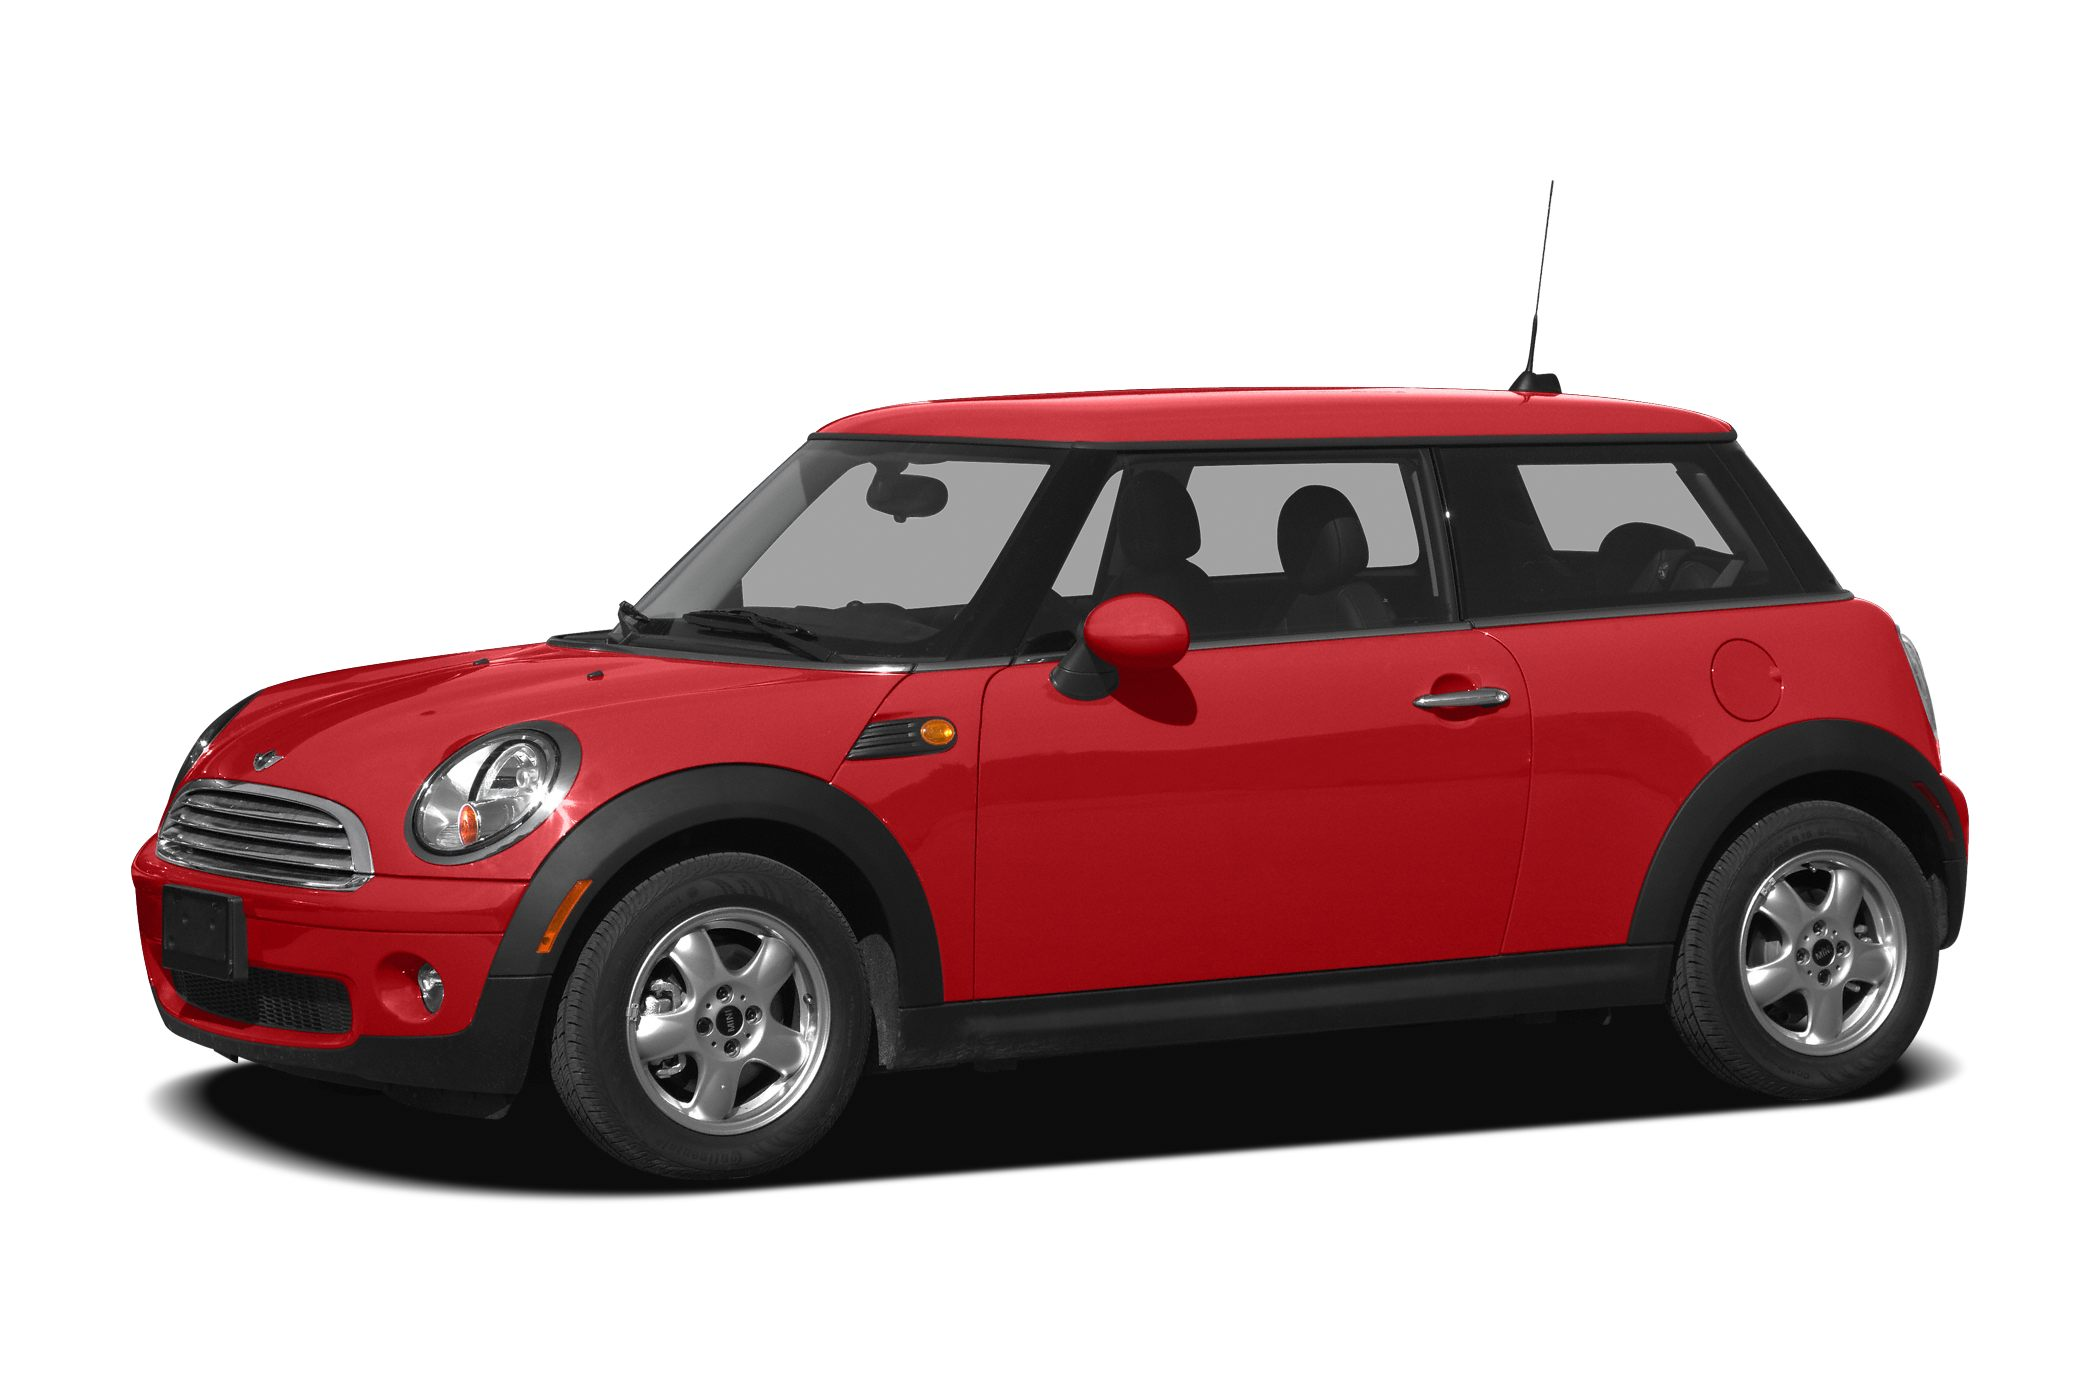 2010 MINI Cooper Hatchback for sale in Falls Church for $10,995 with 73,061 miles